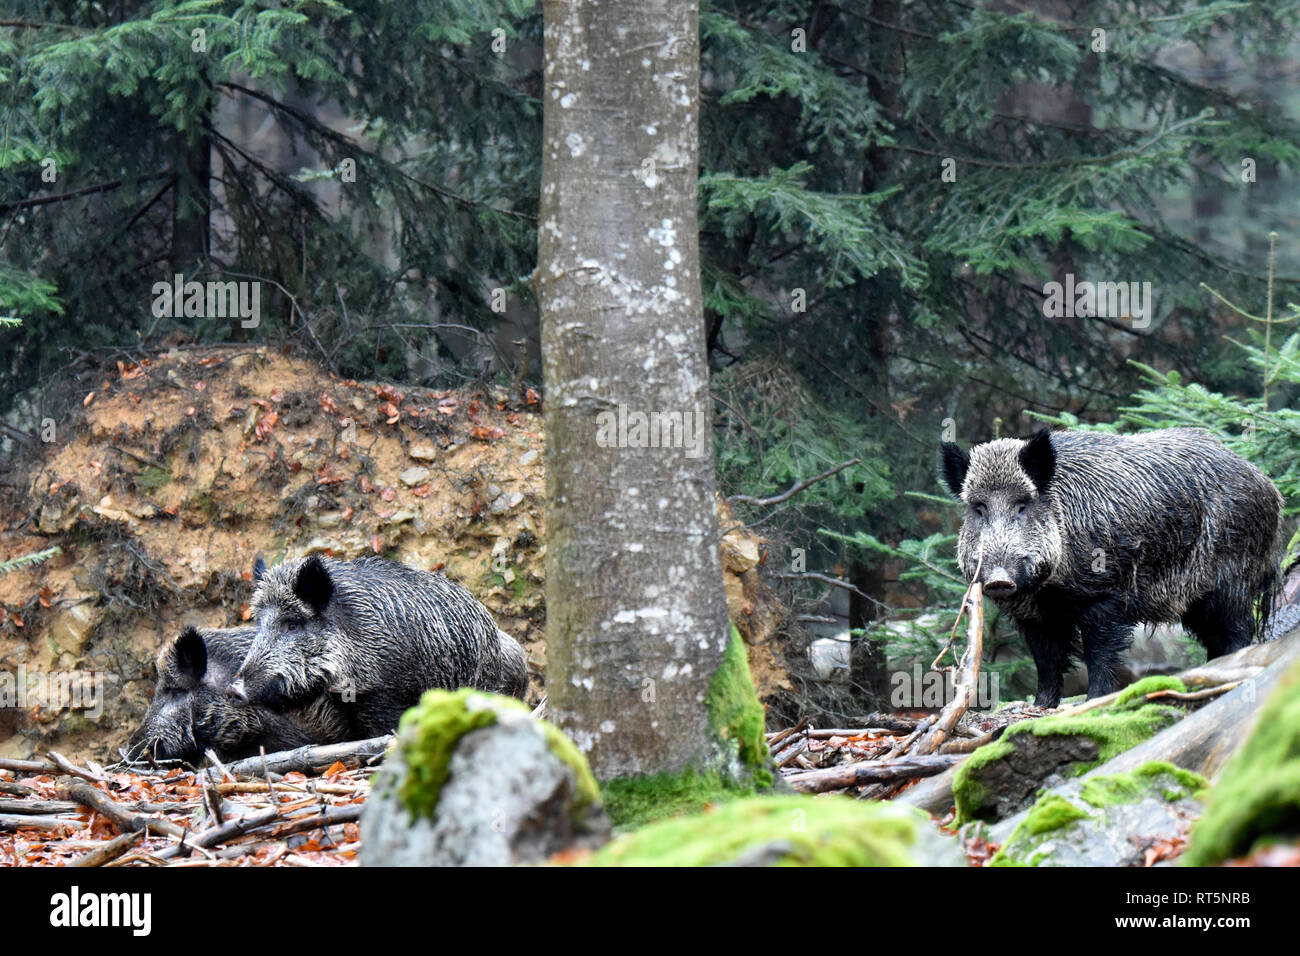 Pigs, beech mast, Buchenwald, real pigs, cloven-hoofed animals, sow, making a mess, making a mess in winter, black smock, black game, pig, pigs, Sucke - Stock Image